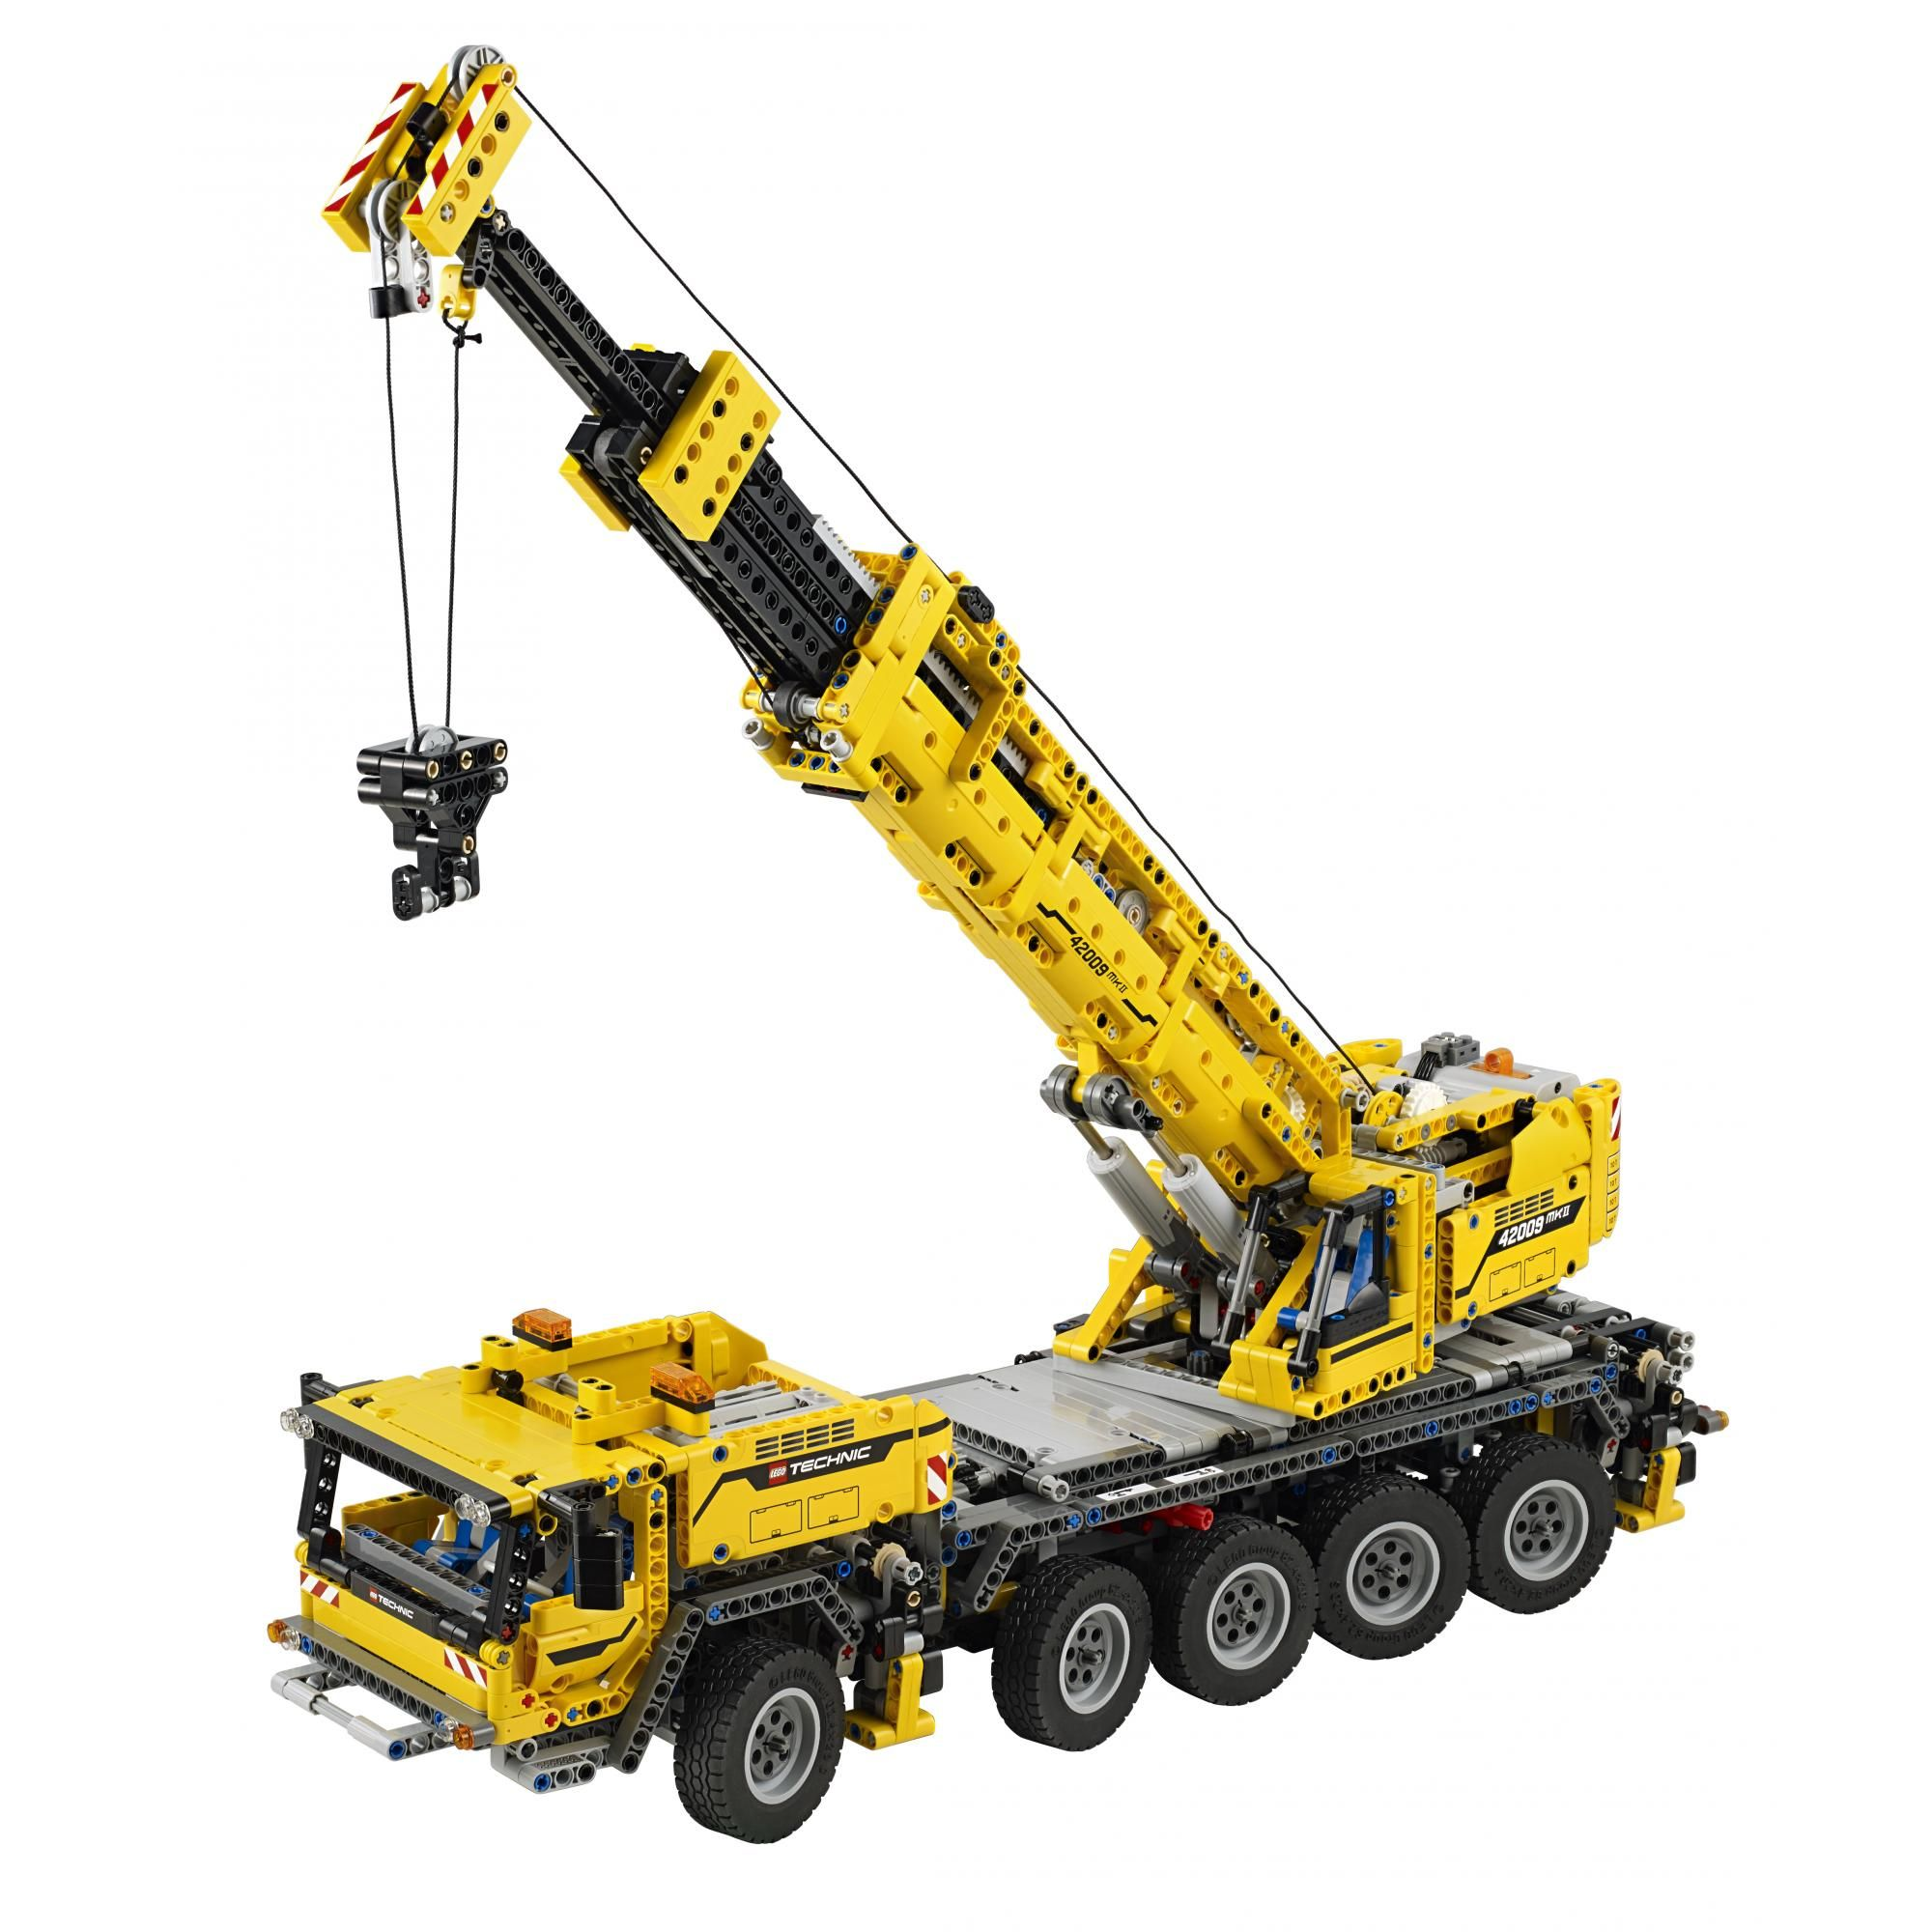 LEGO 42009 Technic Mobile Crane MK II. Check out our 4.76% promotion off retail price!  Enjoy a further $10 discount if you self collect your purchase! Delivery within Singapore. LEGO® is a trademark of The LEGO Group of companies. Chucklingbaby.com is independent of The LEGO Group. All the product images are copyright of The LEGO Group.